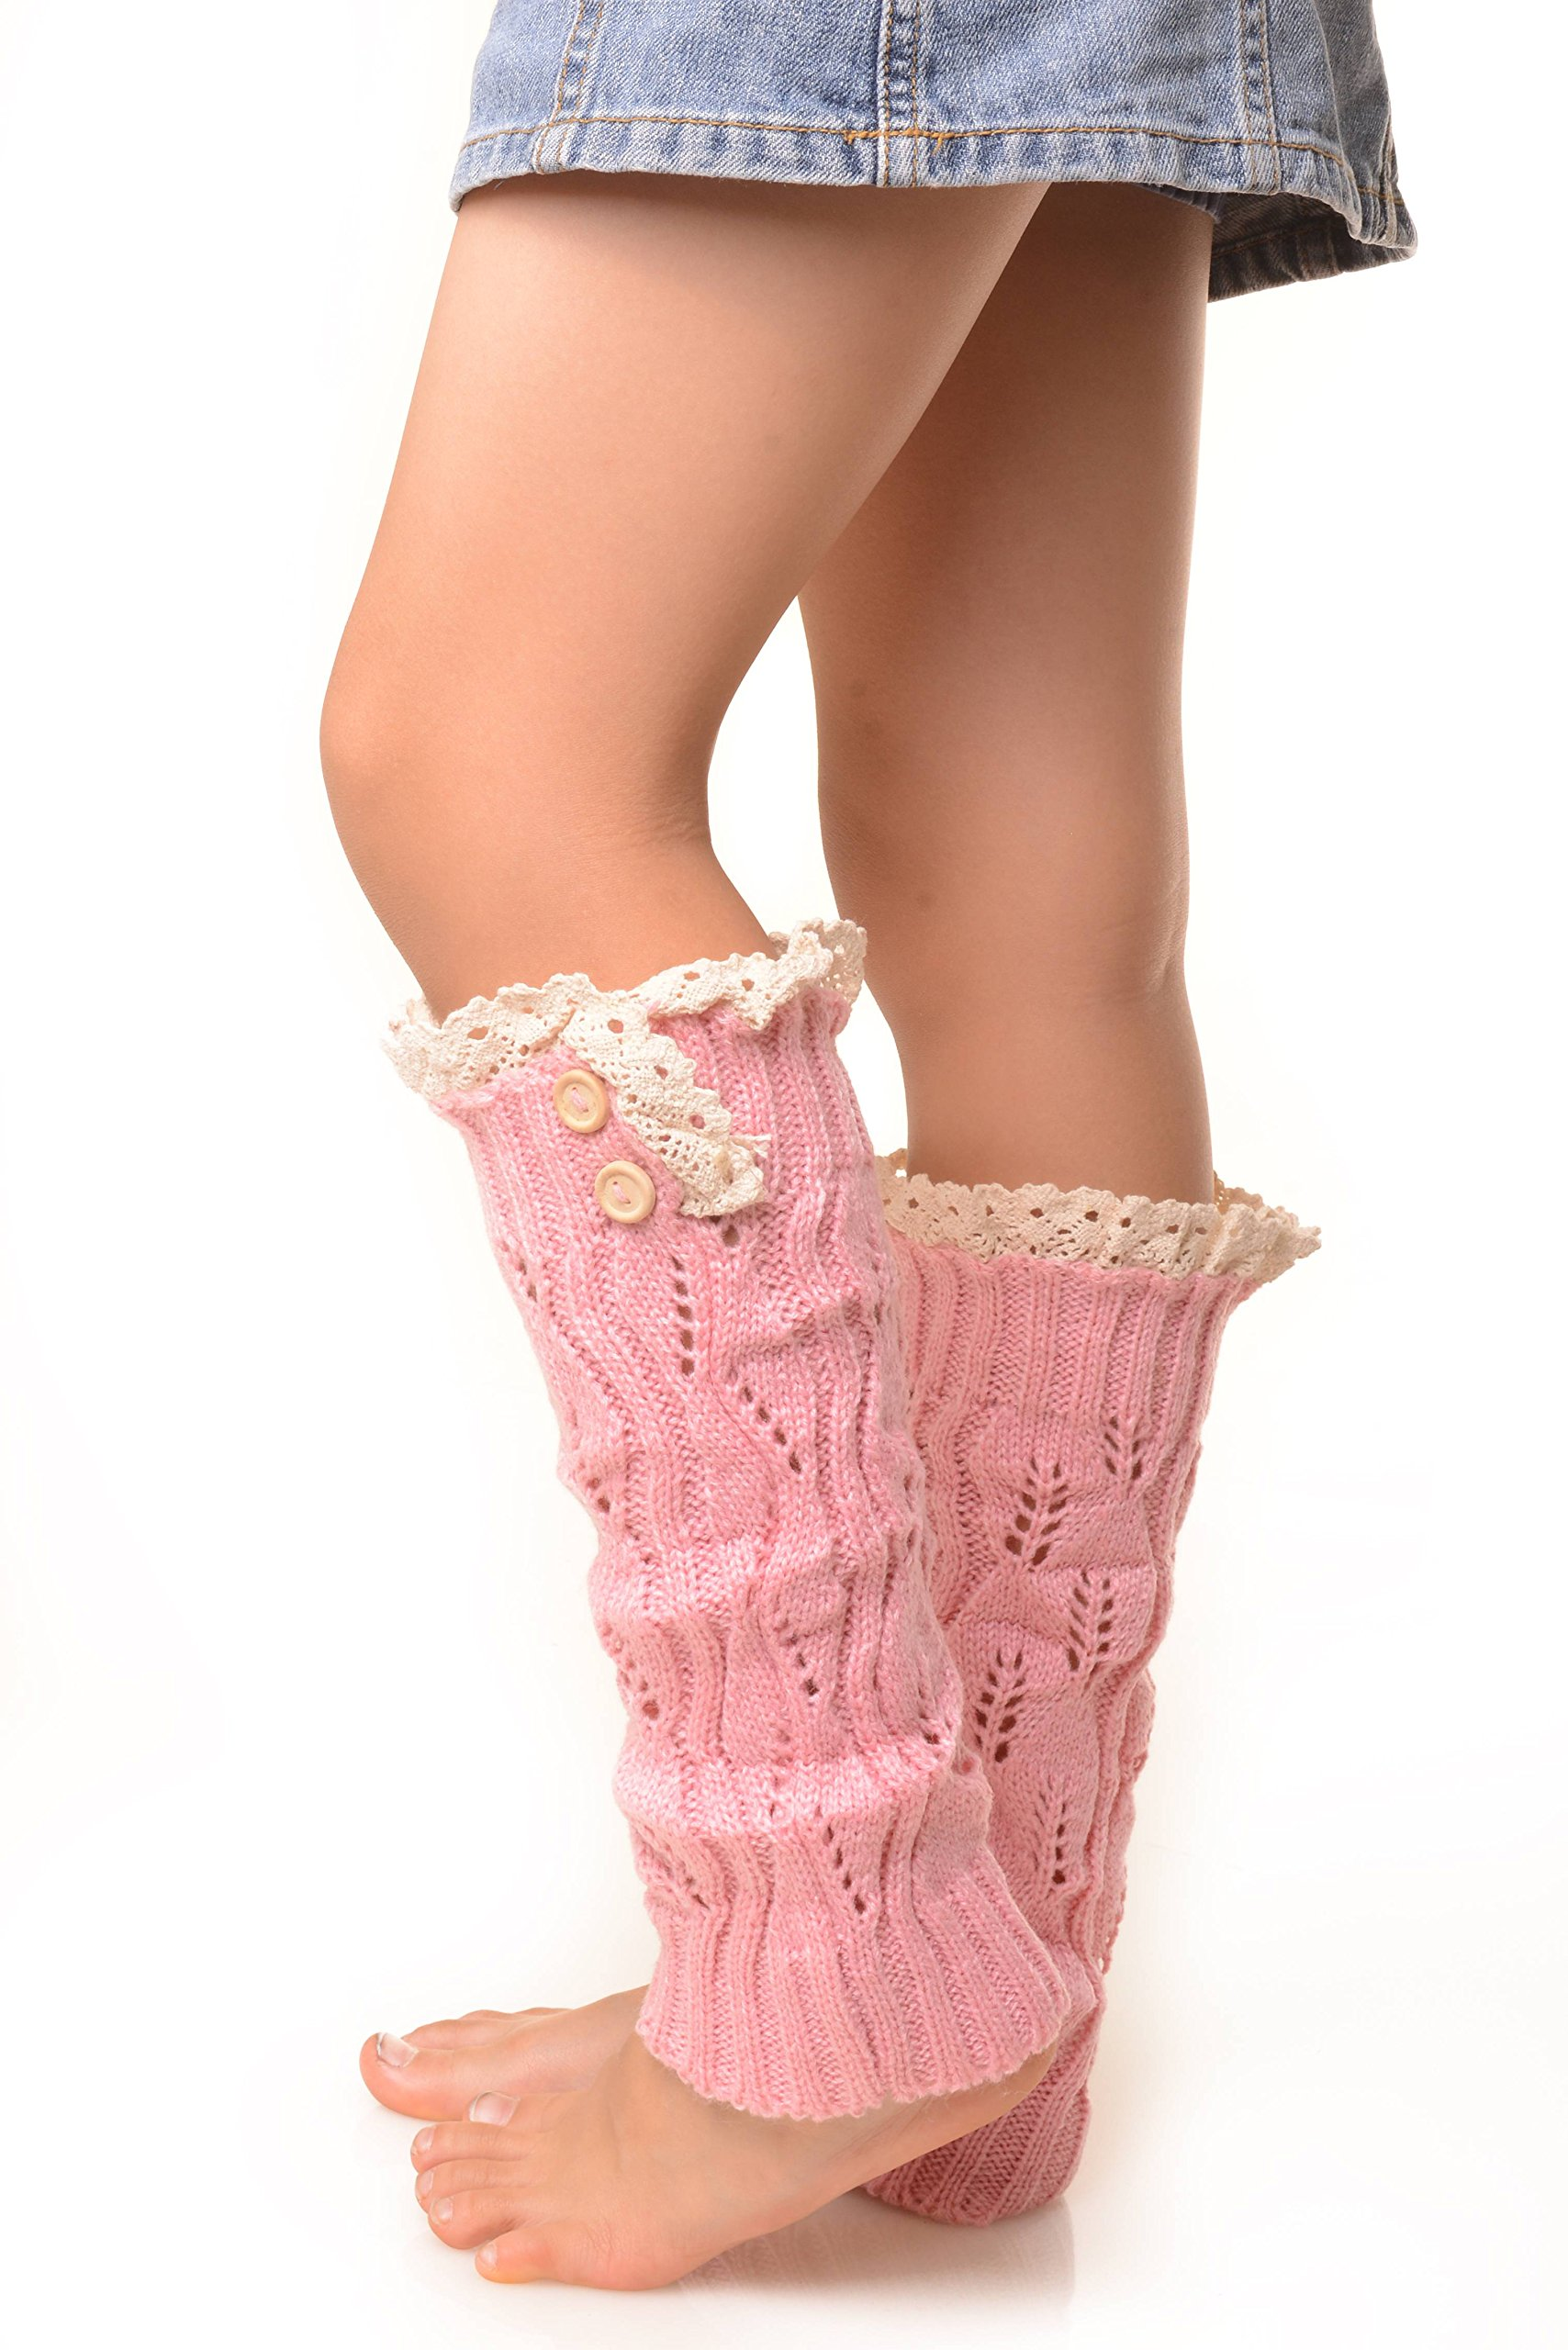 ICONOFLASH Girl's Sweater Knit Leg Warmers with